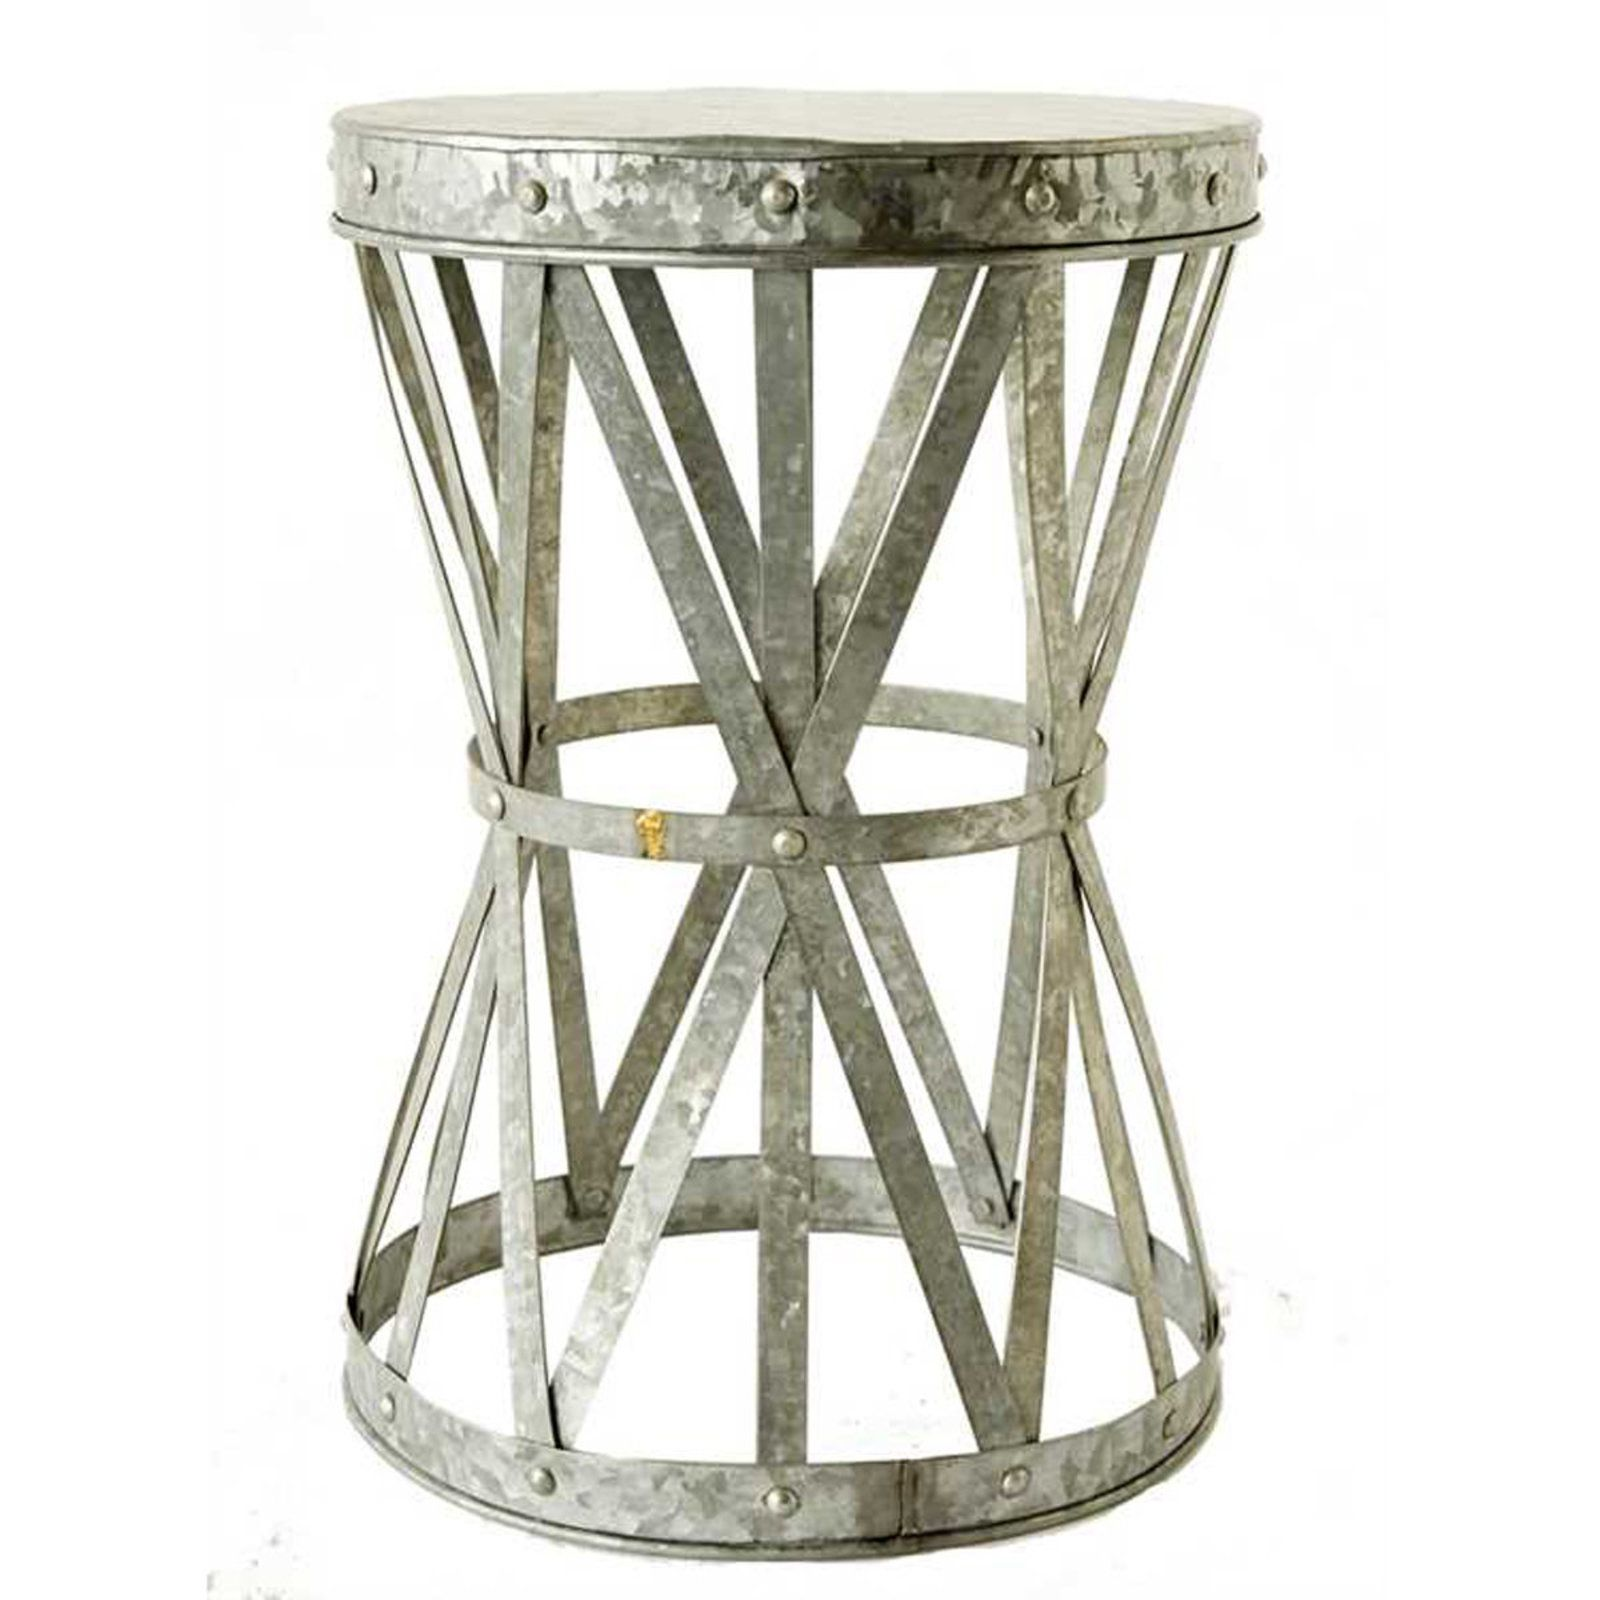 galvanized metal side table stool catalog crush accent decor rustic antique coffee top designs pendant ceiling lights target round bulk linens kohls slipcovers west elm sconce